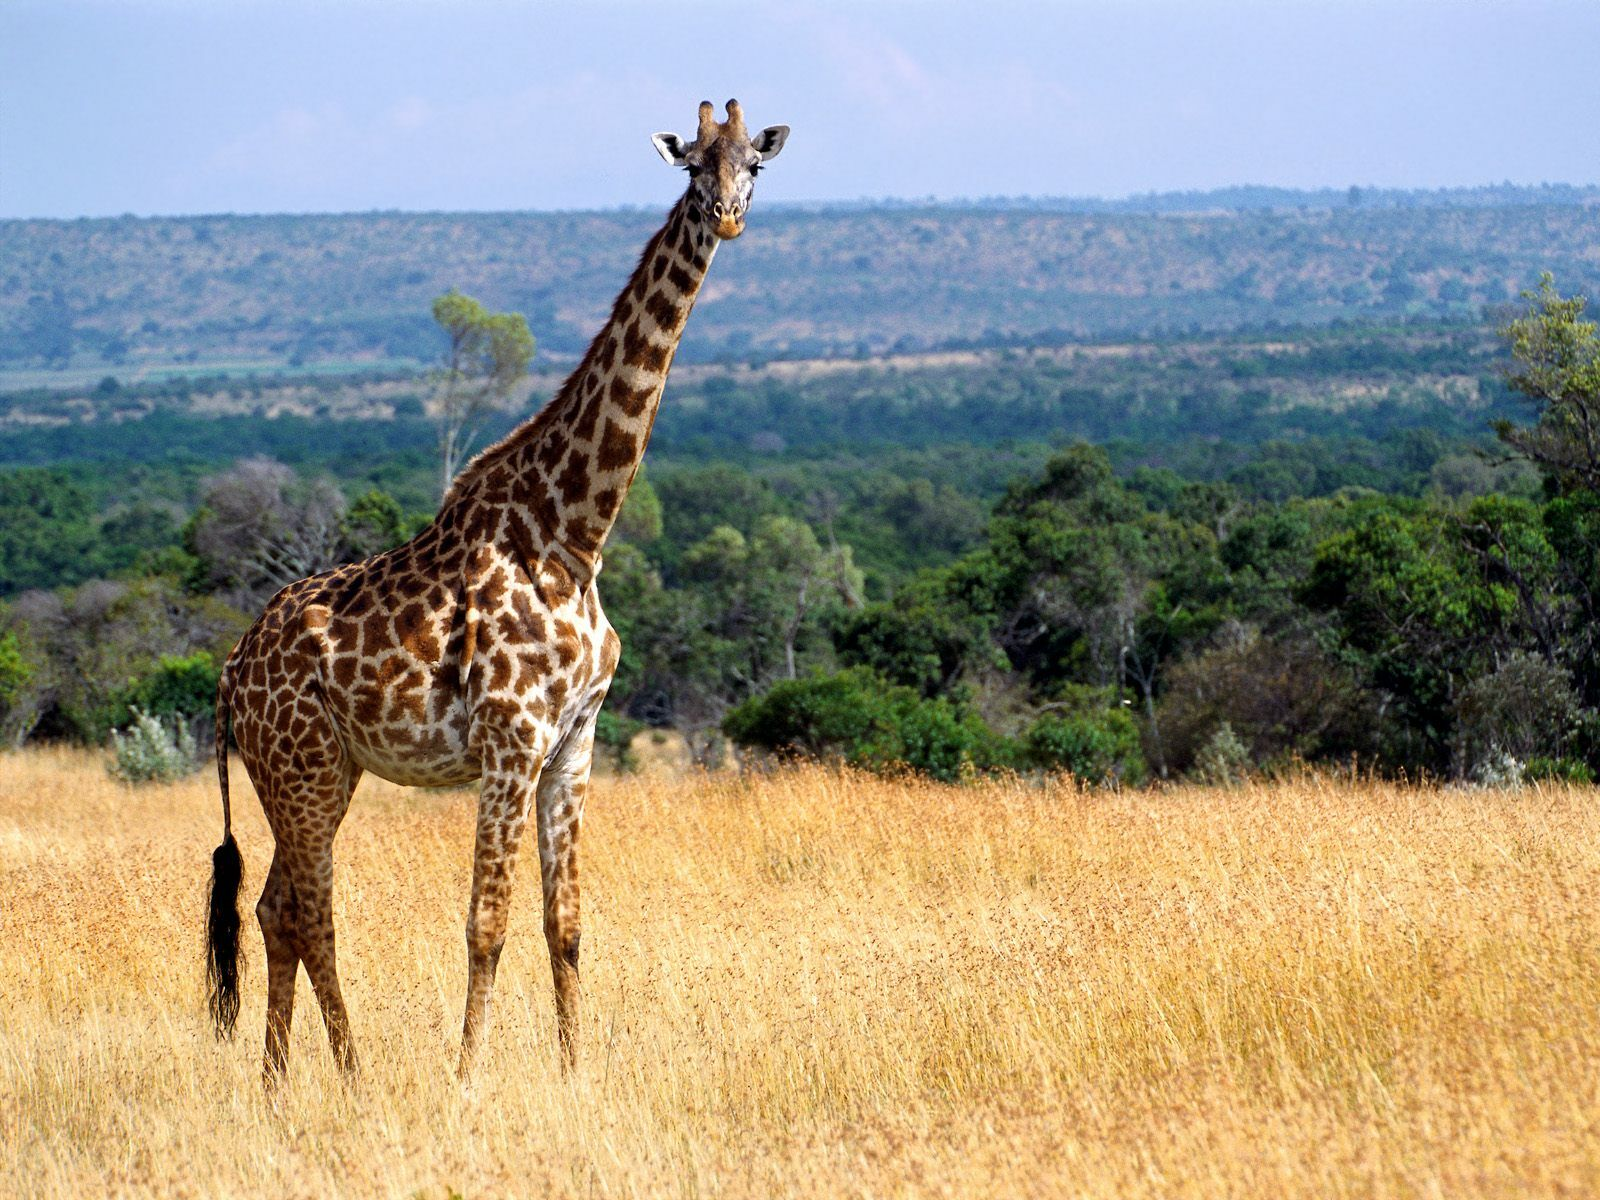 Picture of a giraffe in Kenya